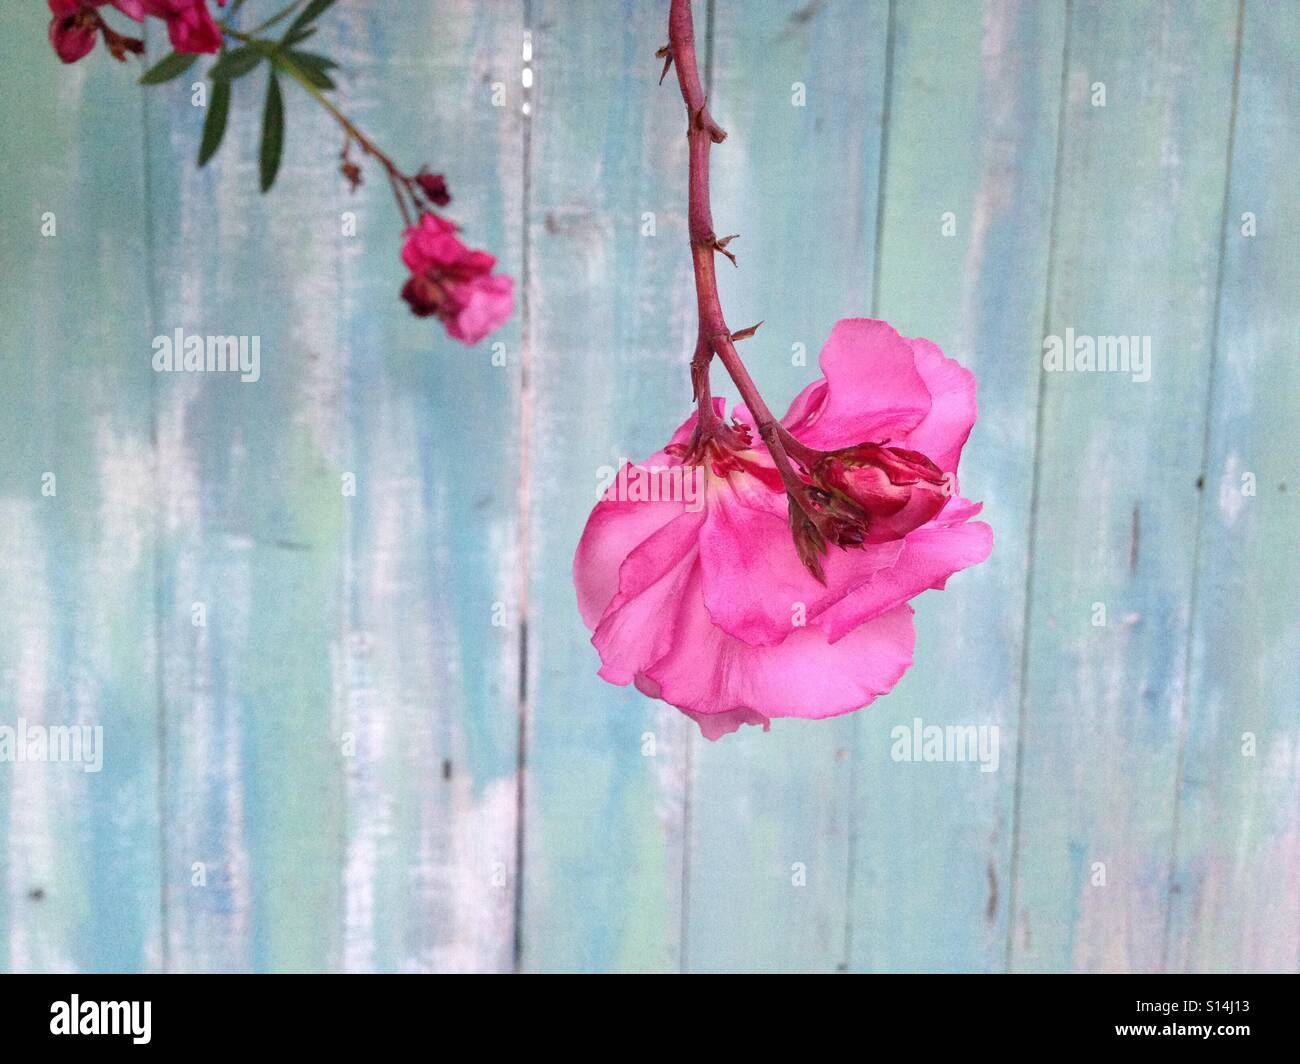 Pink flowers and fence - Stock Image